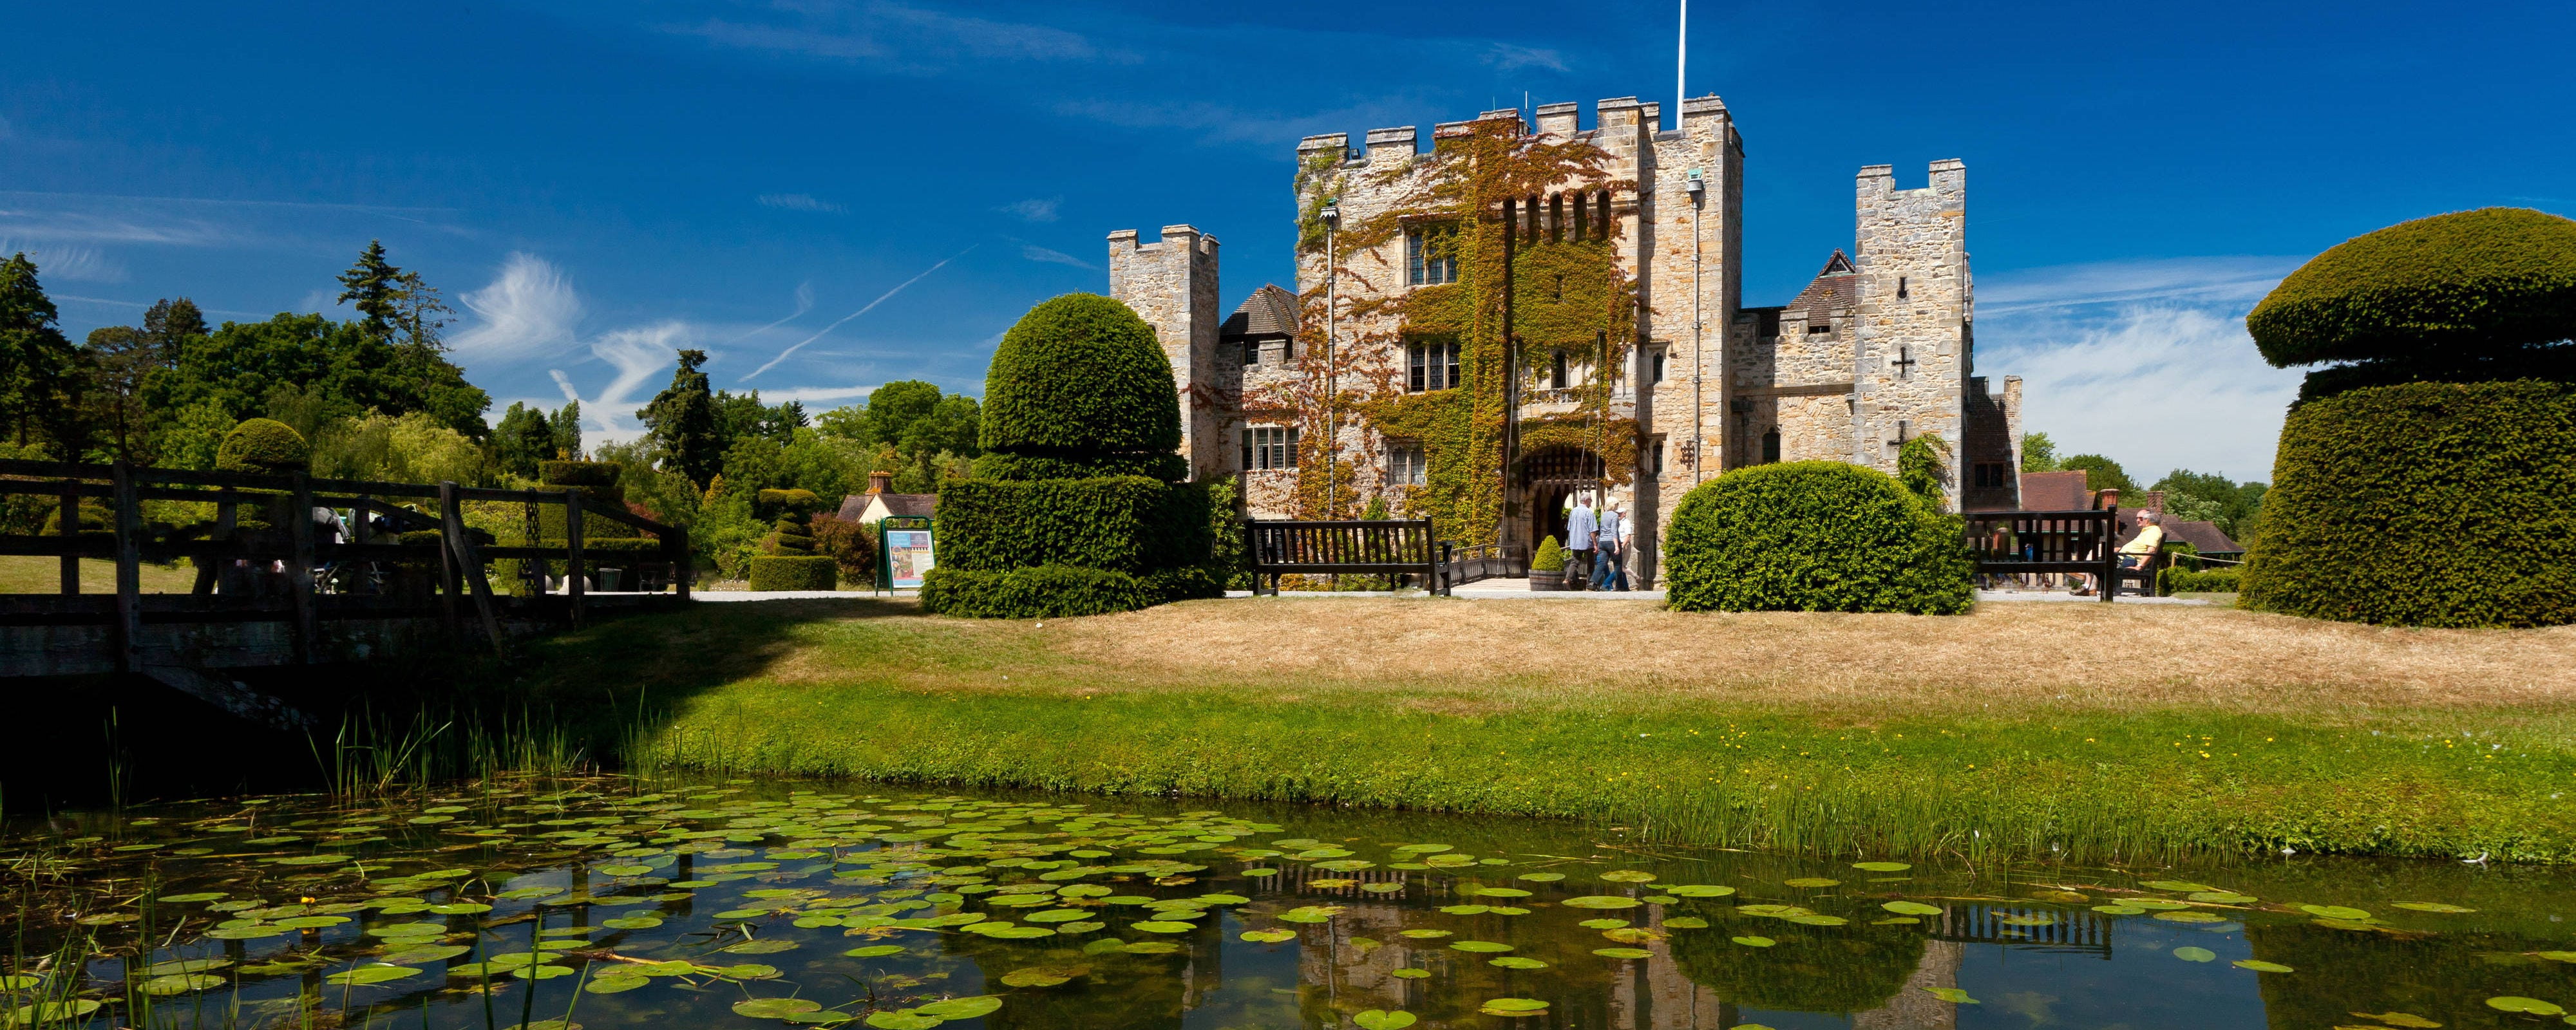 Hever Castle & Gardens, UK